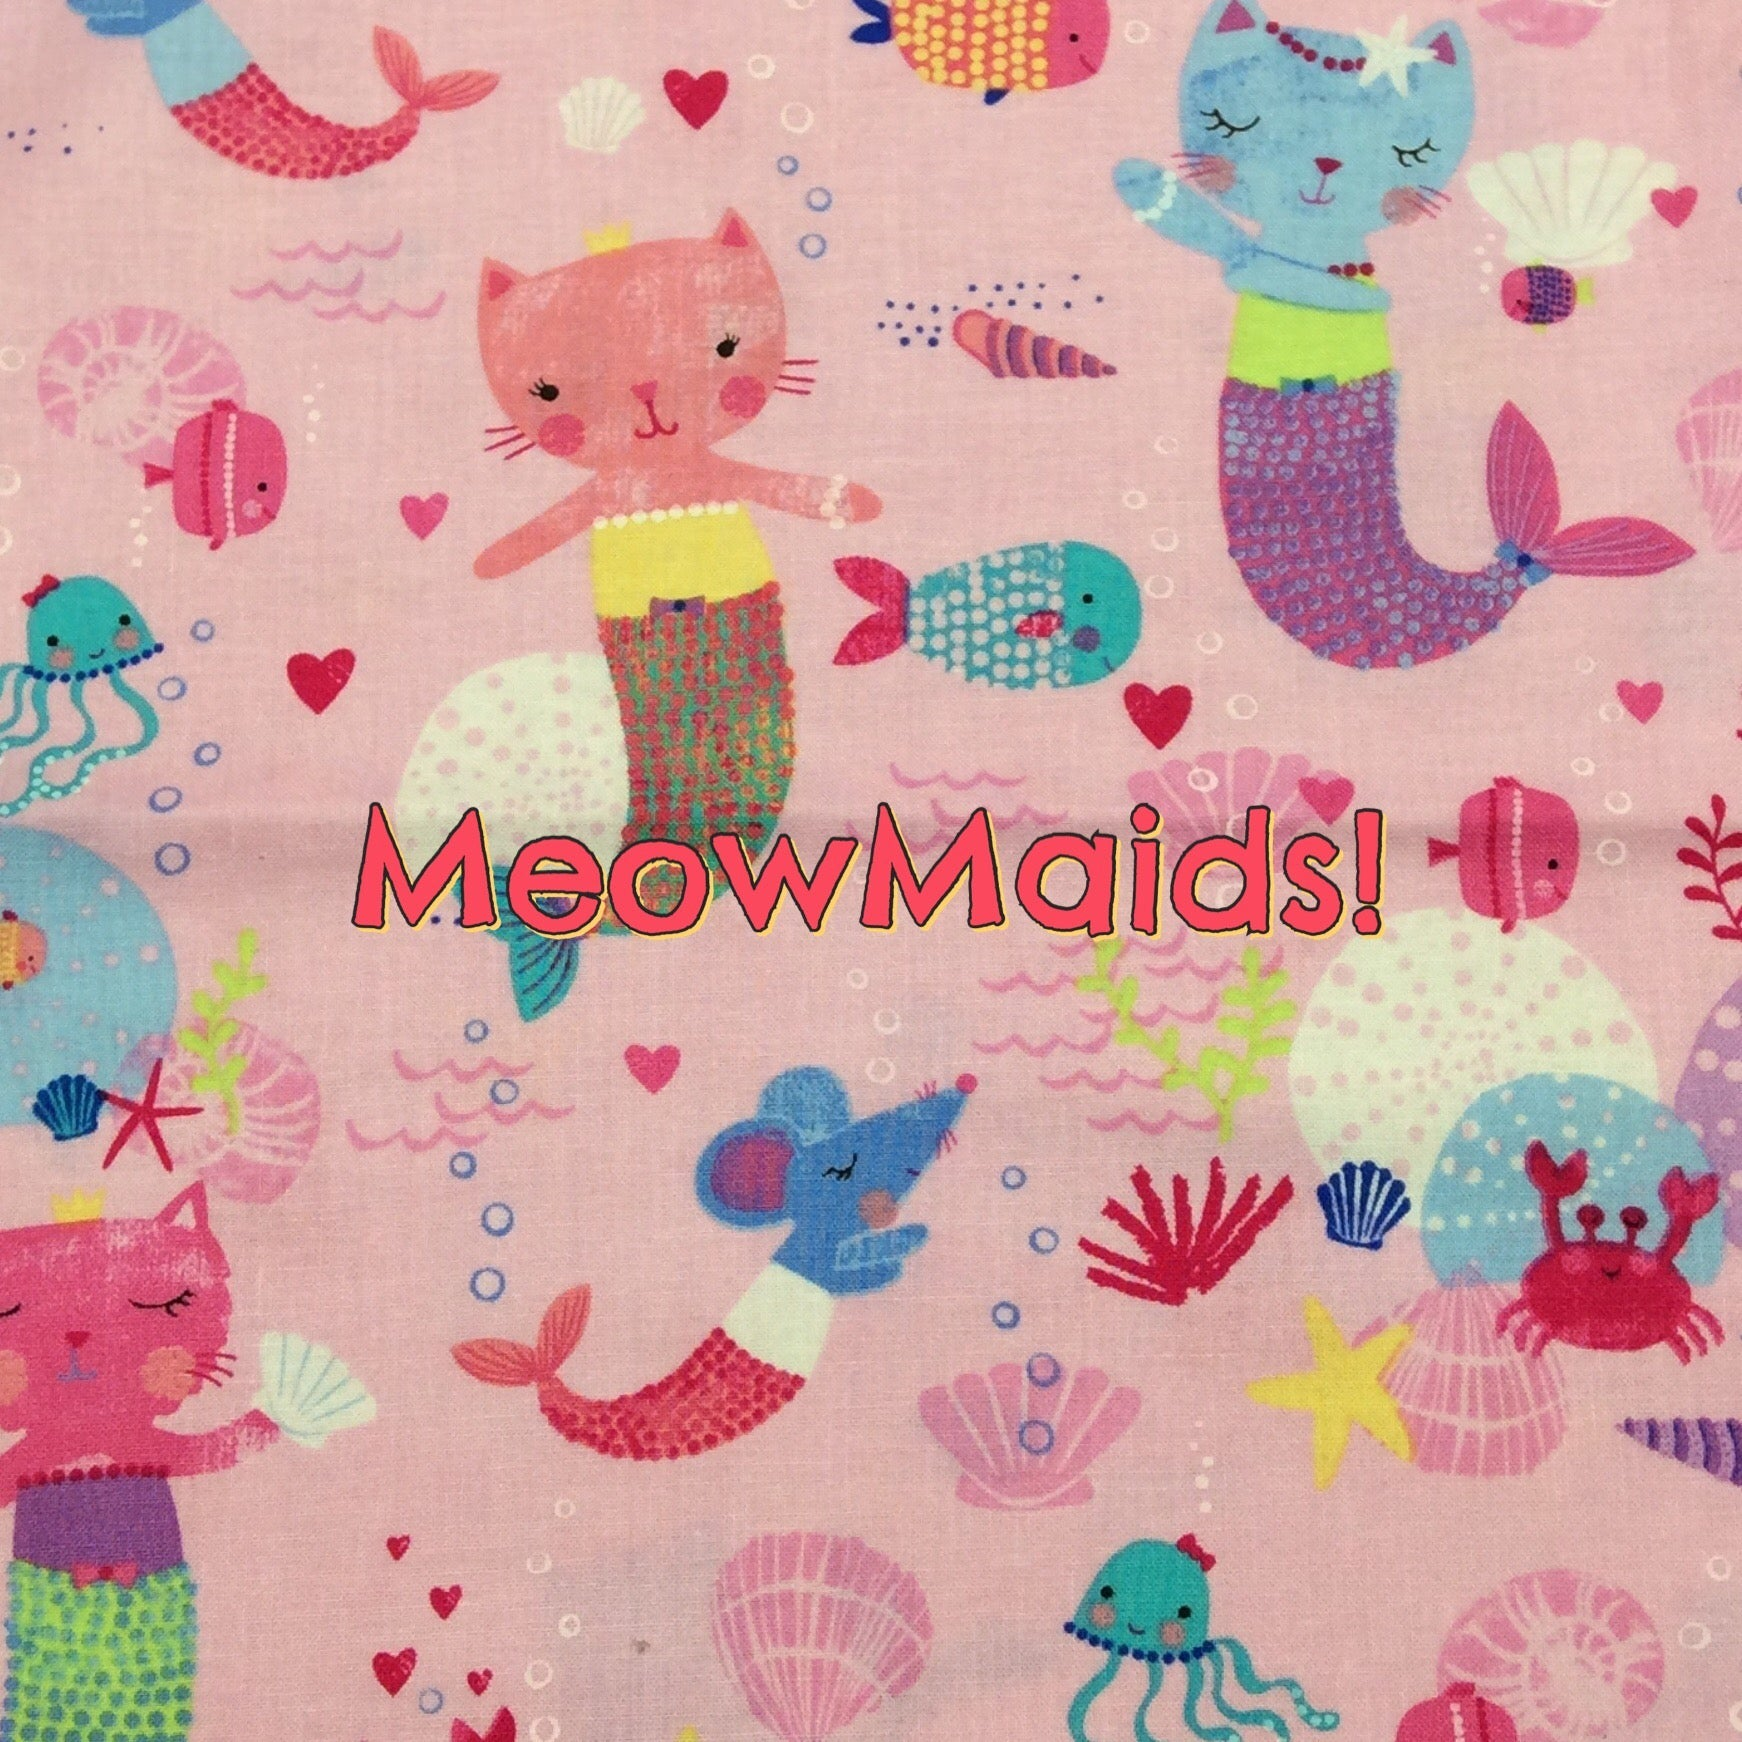 Meowmaids! - Quilter's Cotton